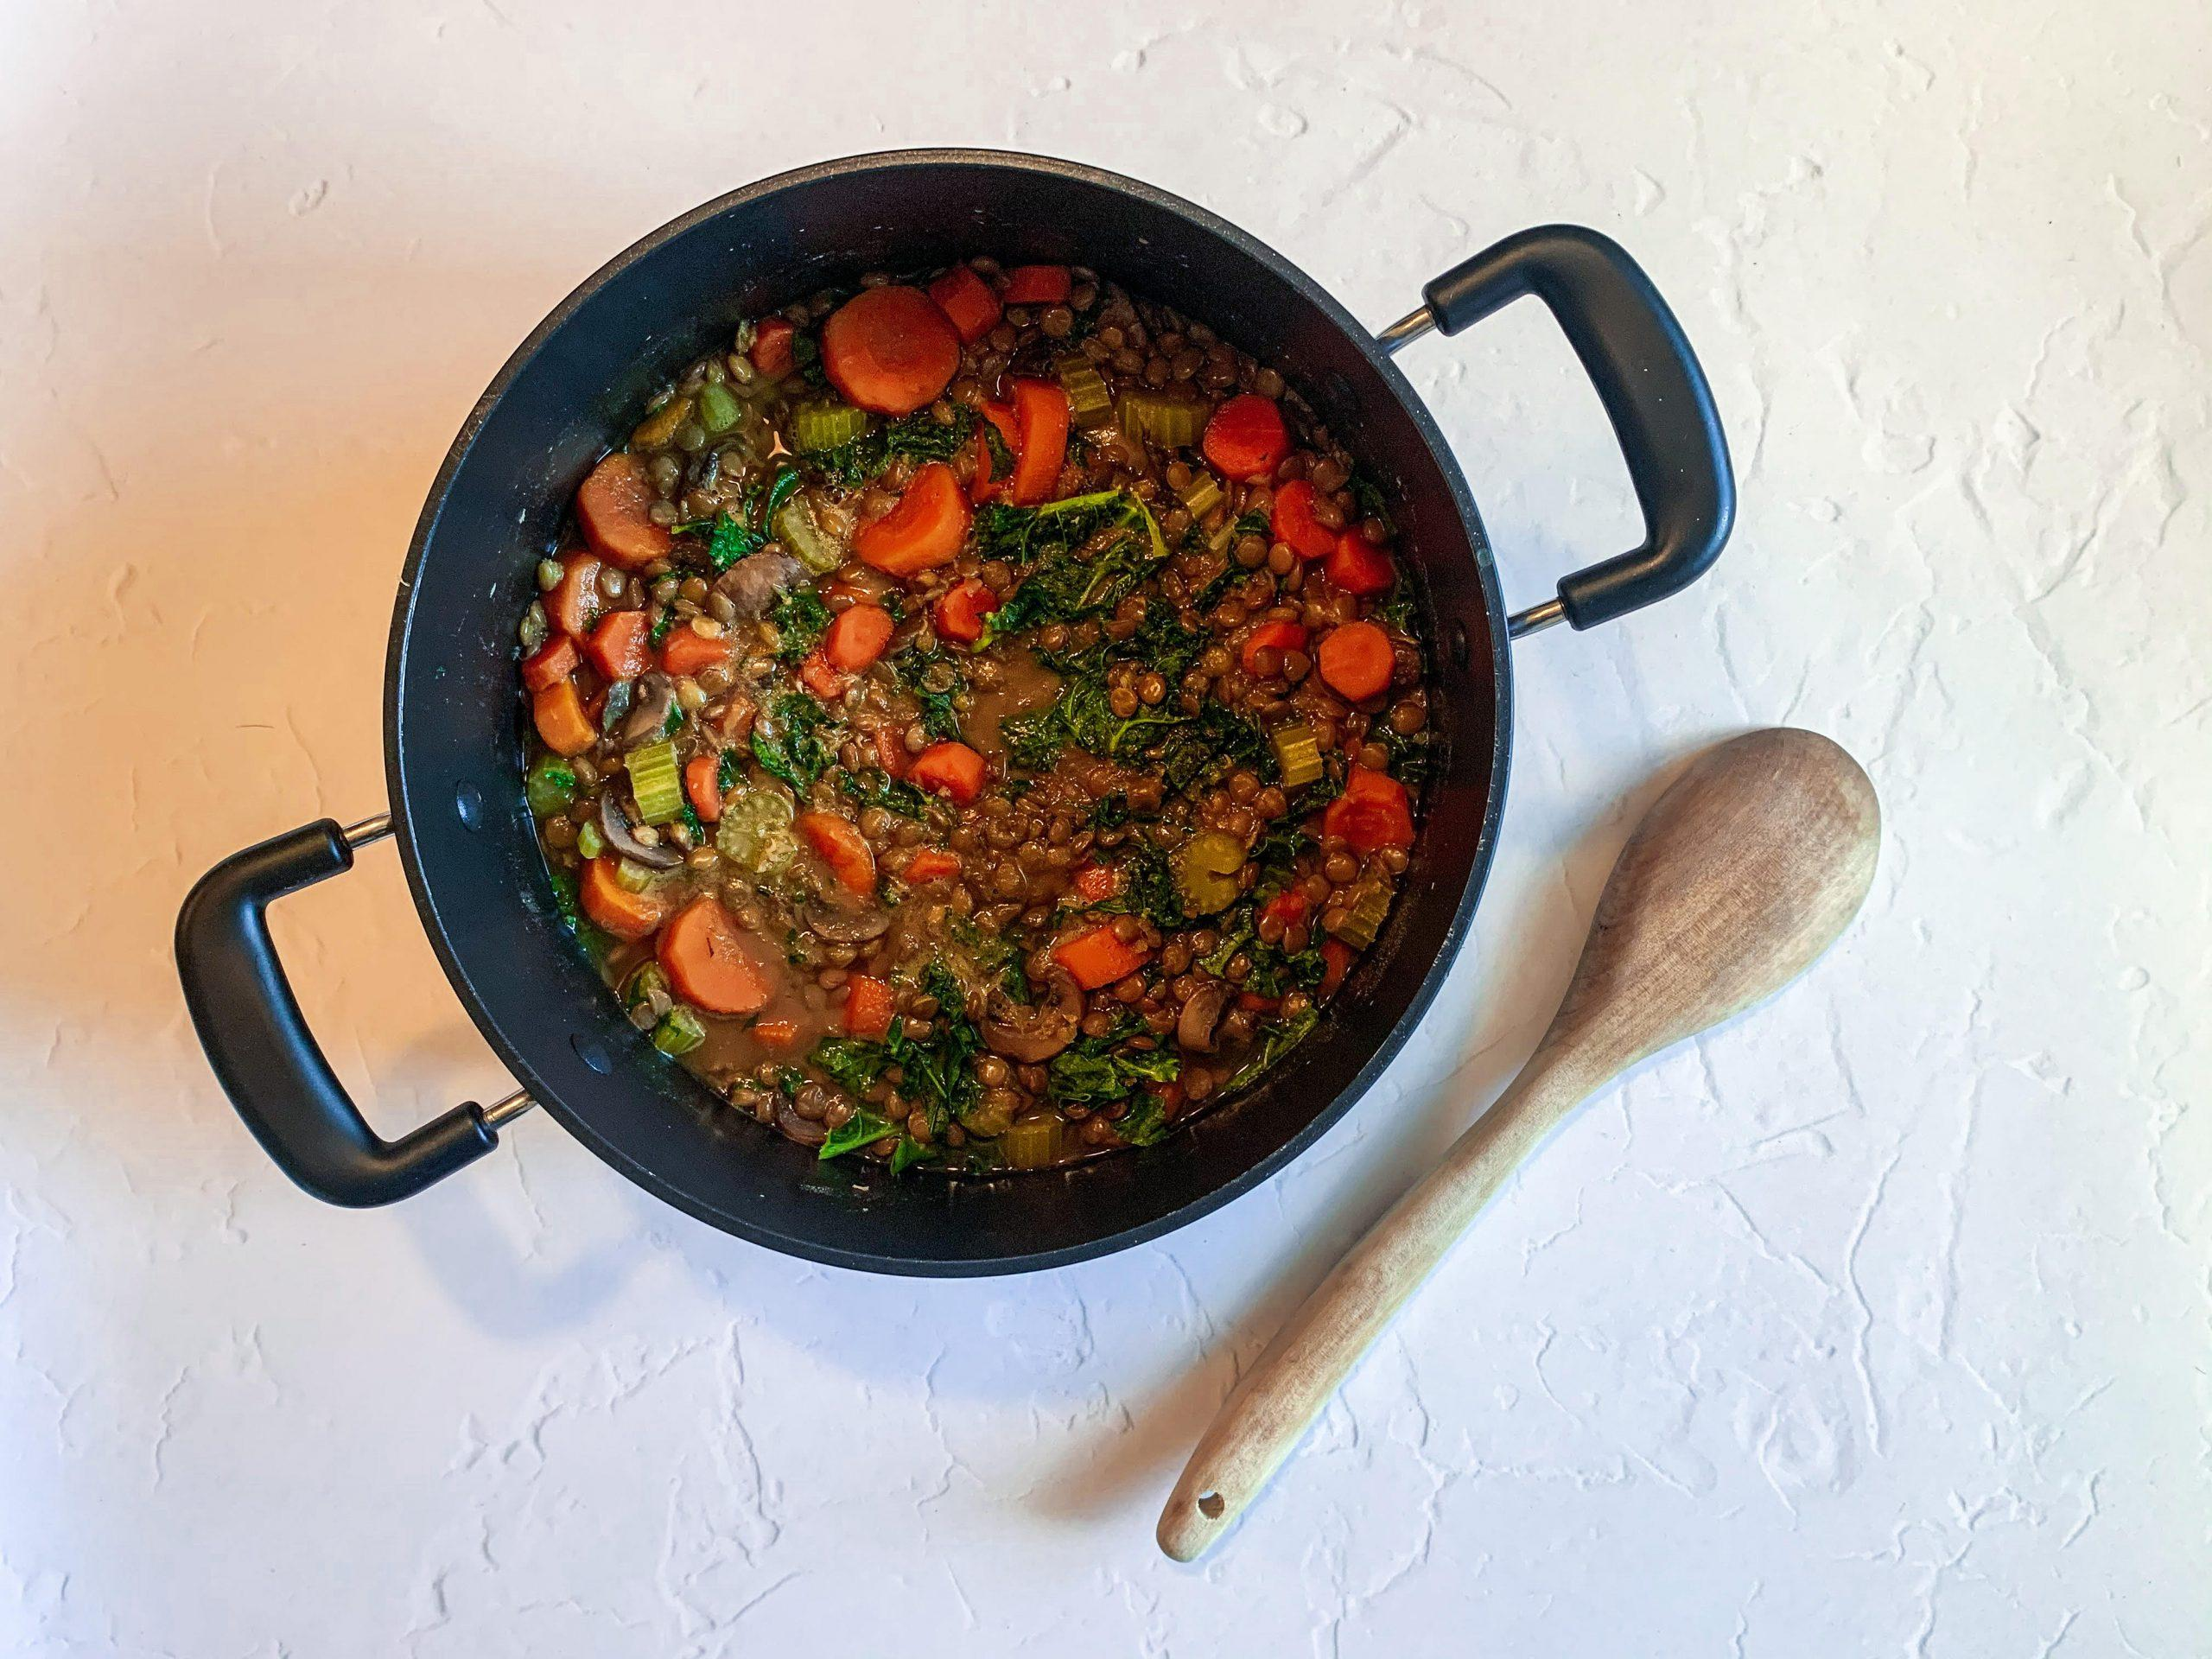 A Healthy Lentil Soup Recipe to Try This Weekend